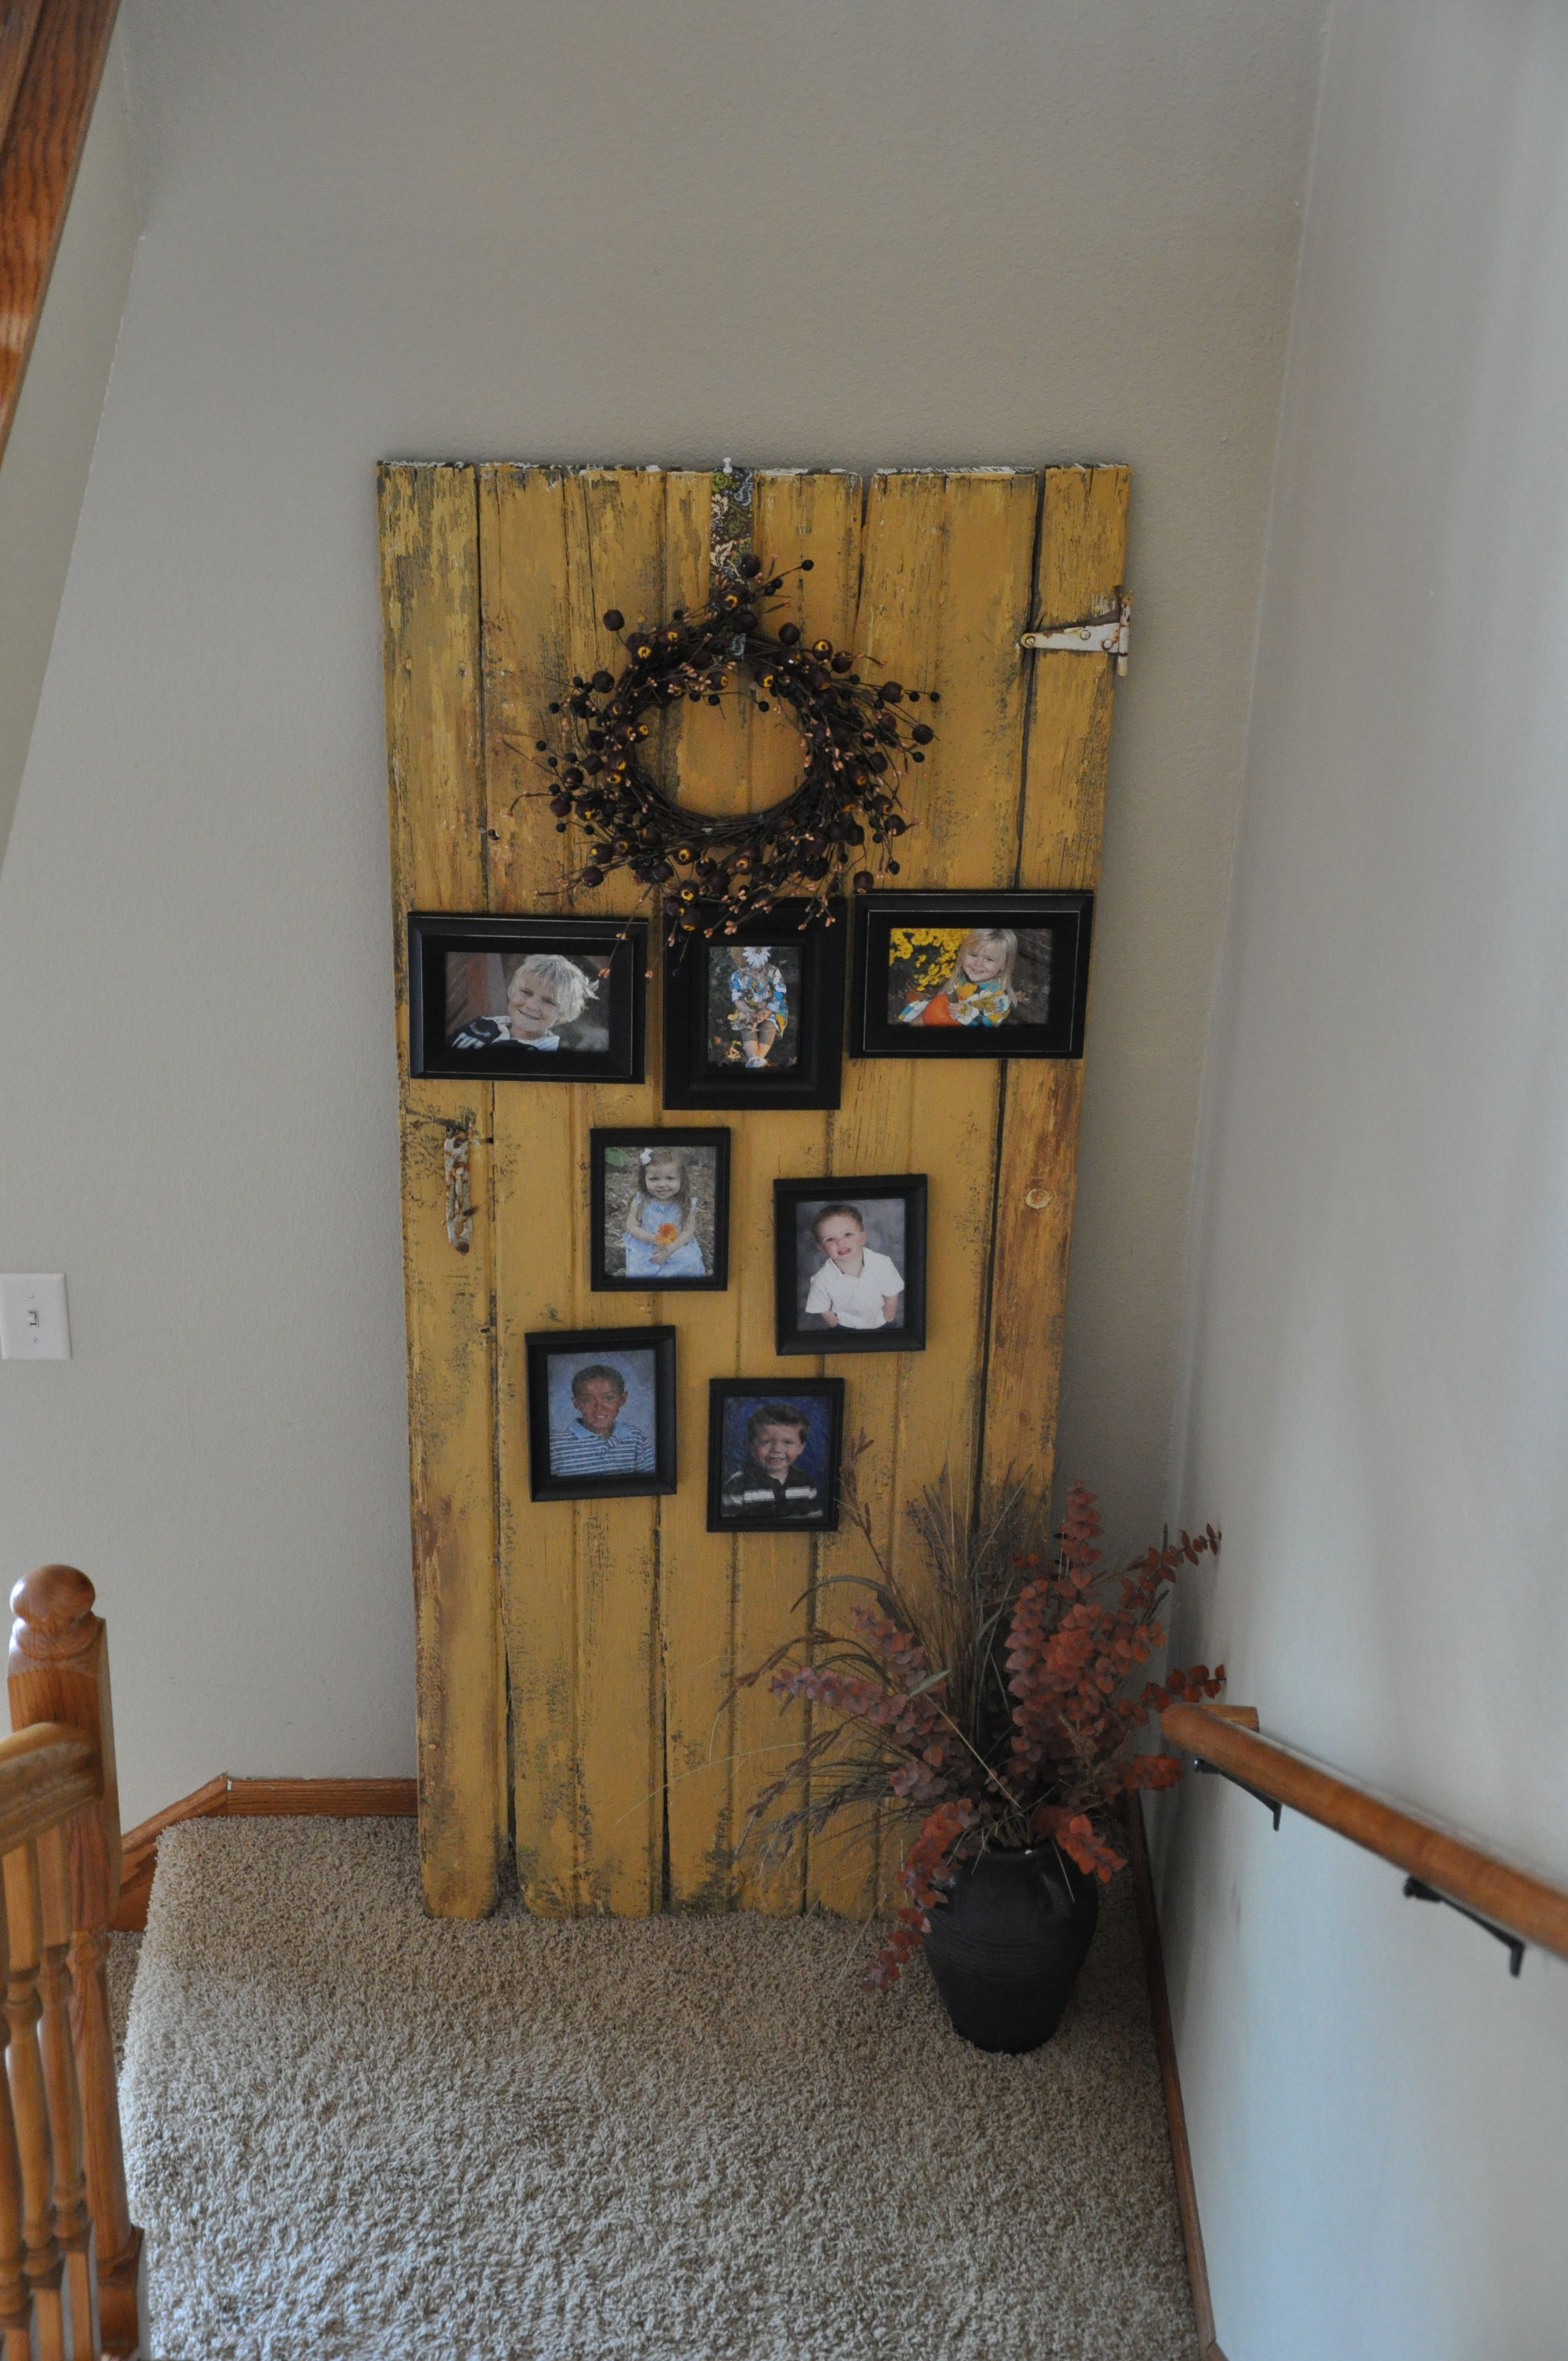 Pin By Wendie Christianson On Decorating Old Barn Doors Primitive Decorating Country Primitive Decorating